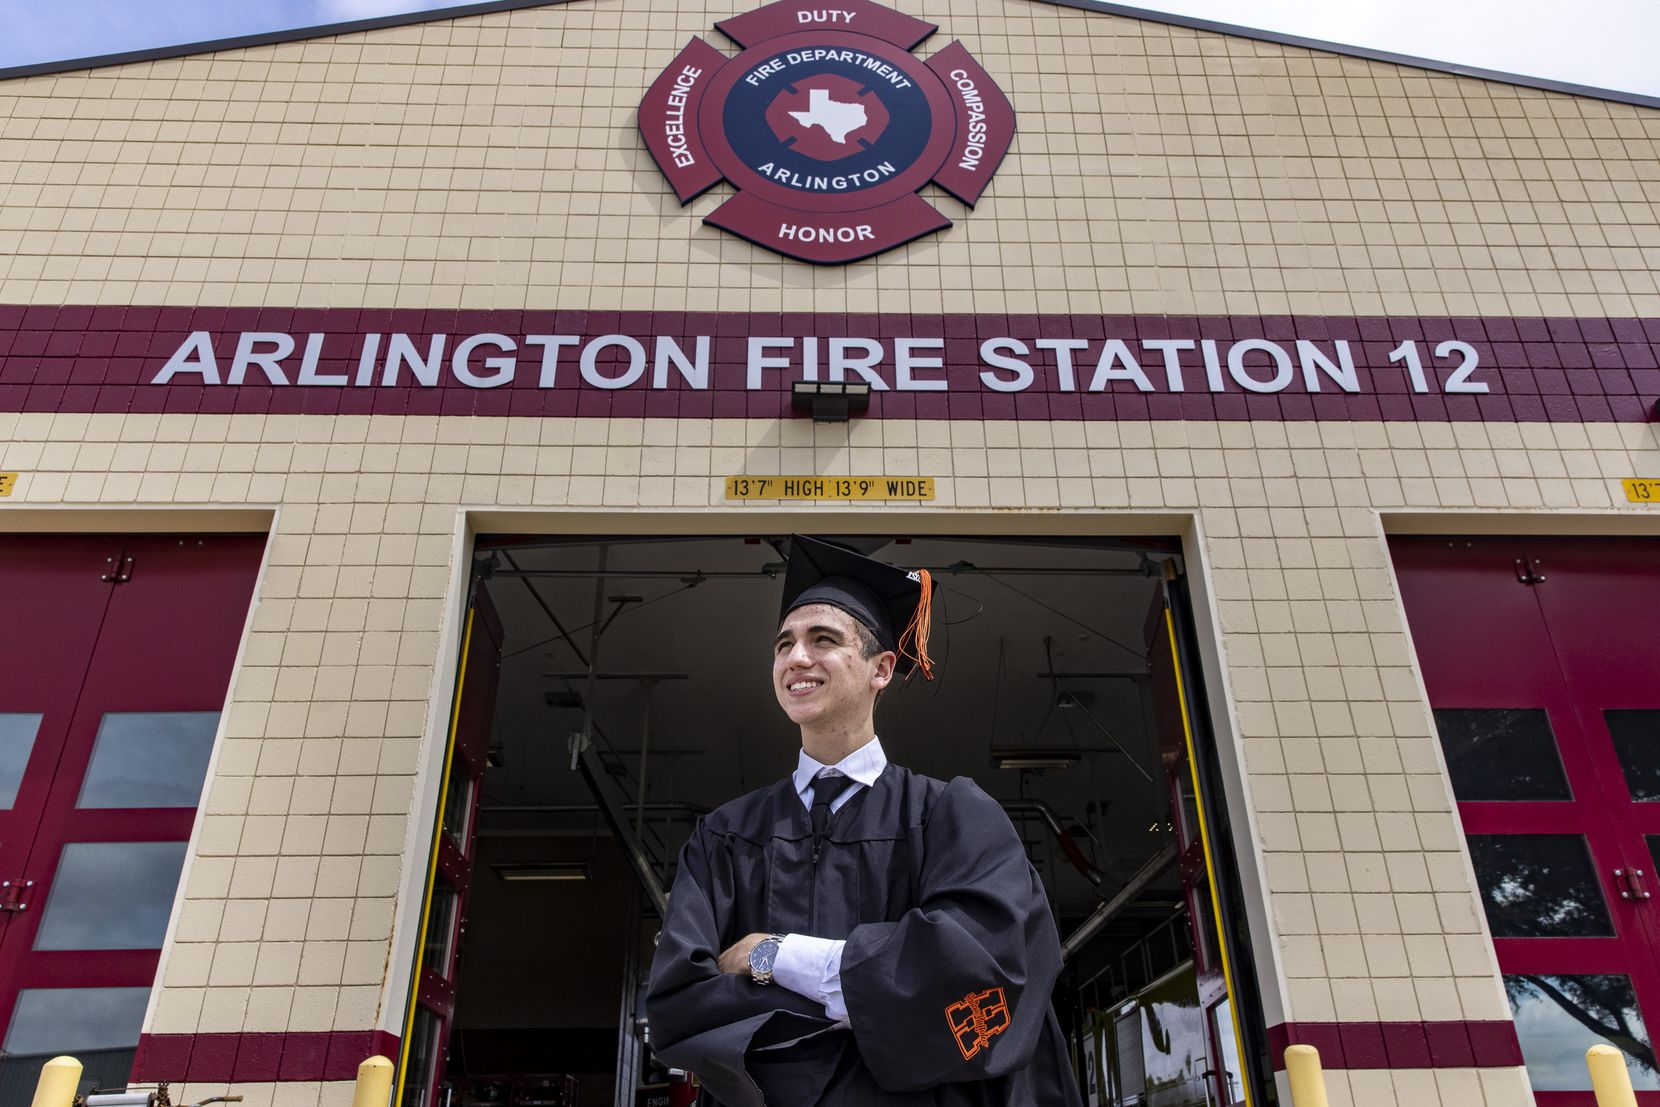 """Koregan Quintanilla, standing in front of Arlington Fire Station 12, said he sometimes wonders about his birth parents. """"It's weird to think there's someone out there with a biological connection, because I truly feel like I grew up with my family."""""""